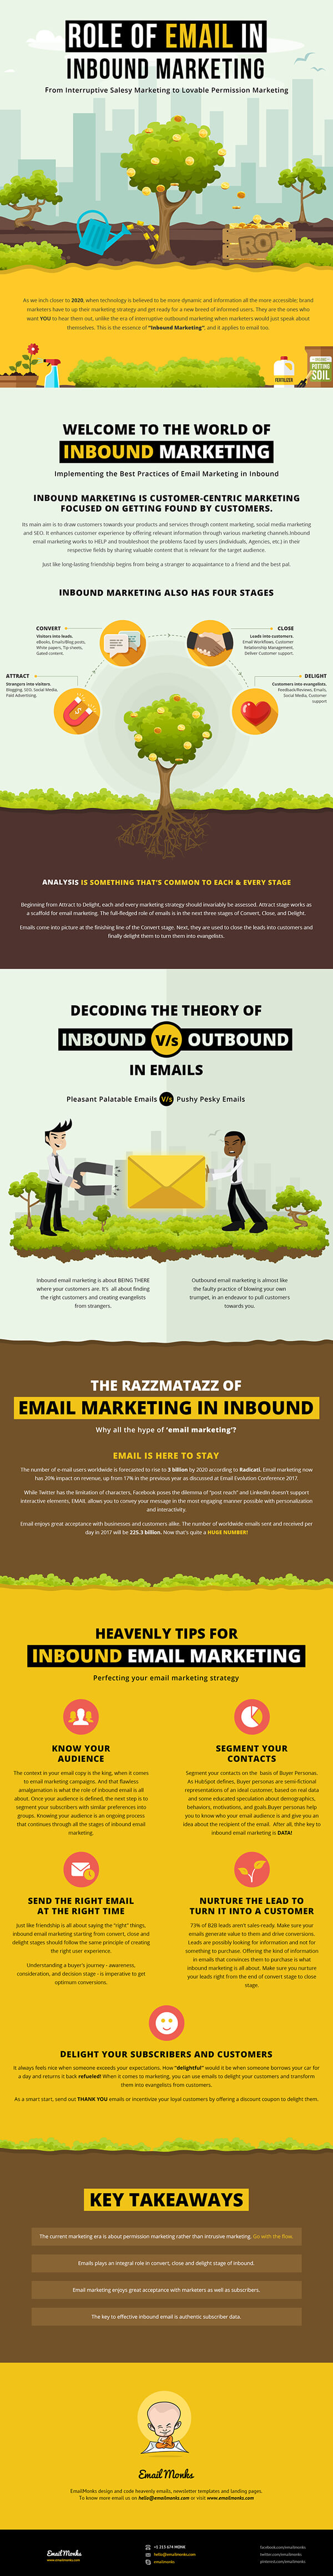 Role-Email-Inbound-Marketing-Infographic